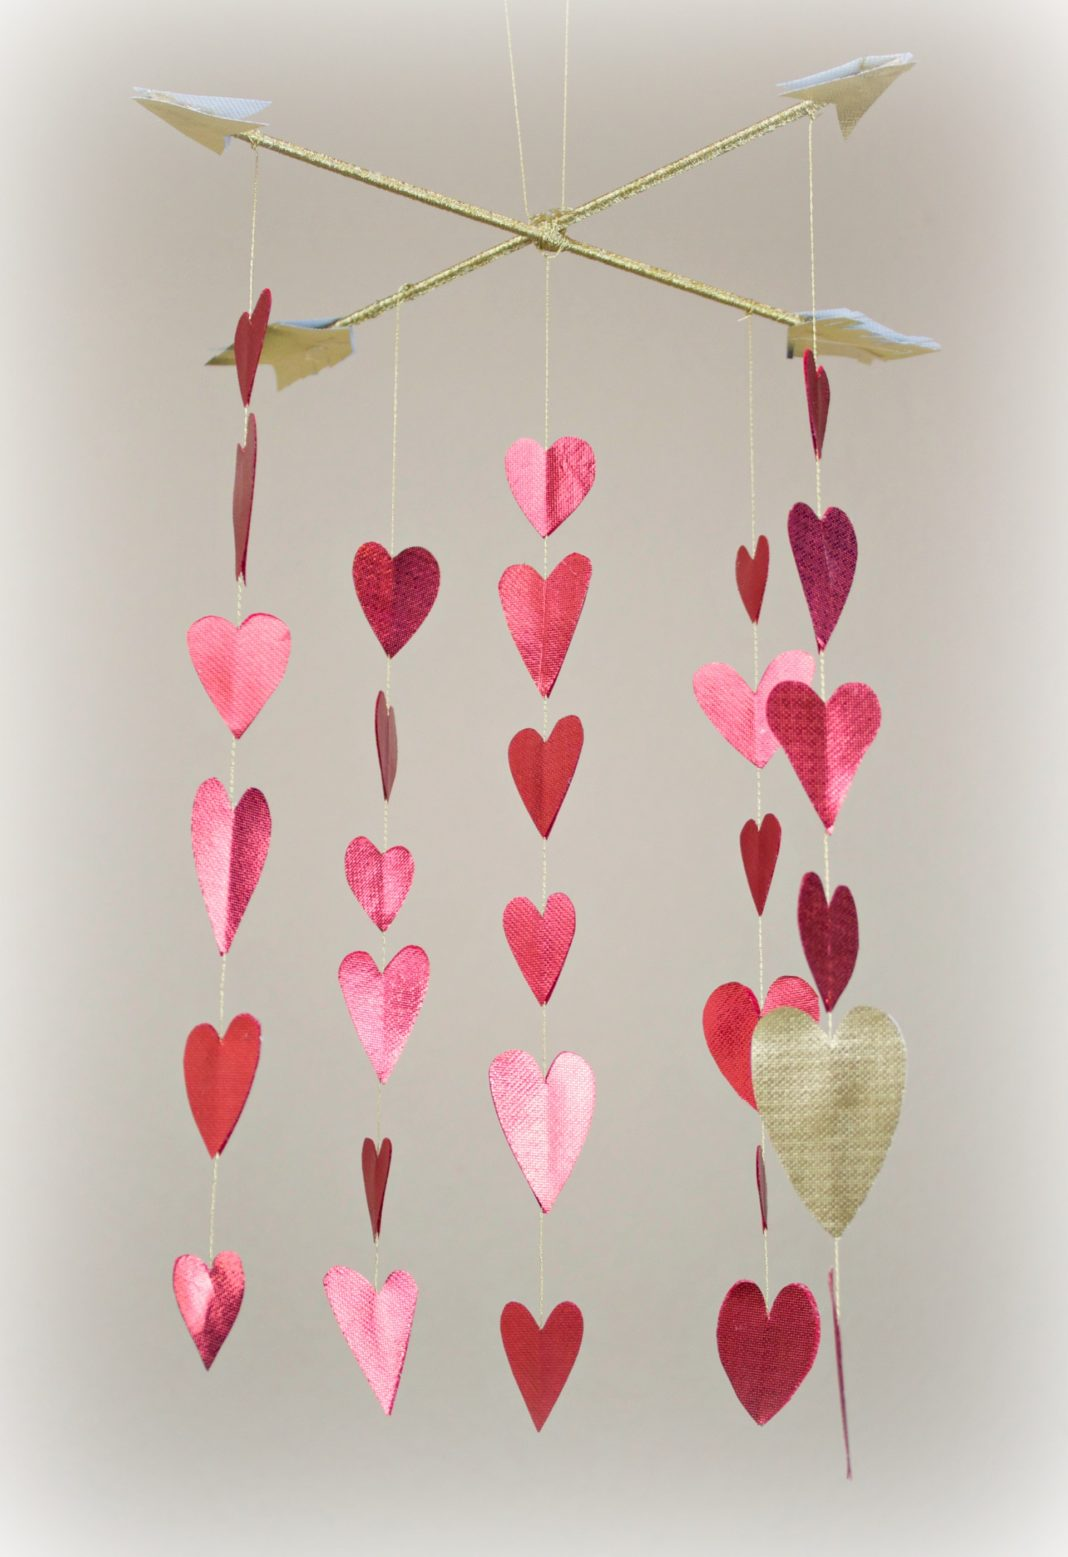 Make a shimmery heart mobile to decorate your room with for Valentine's day!